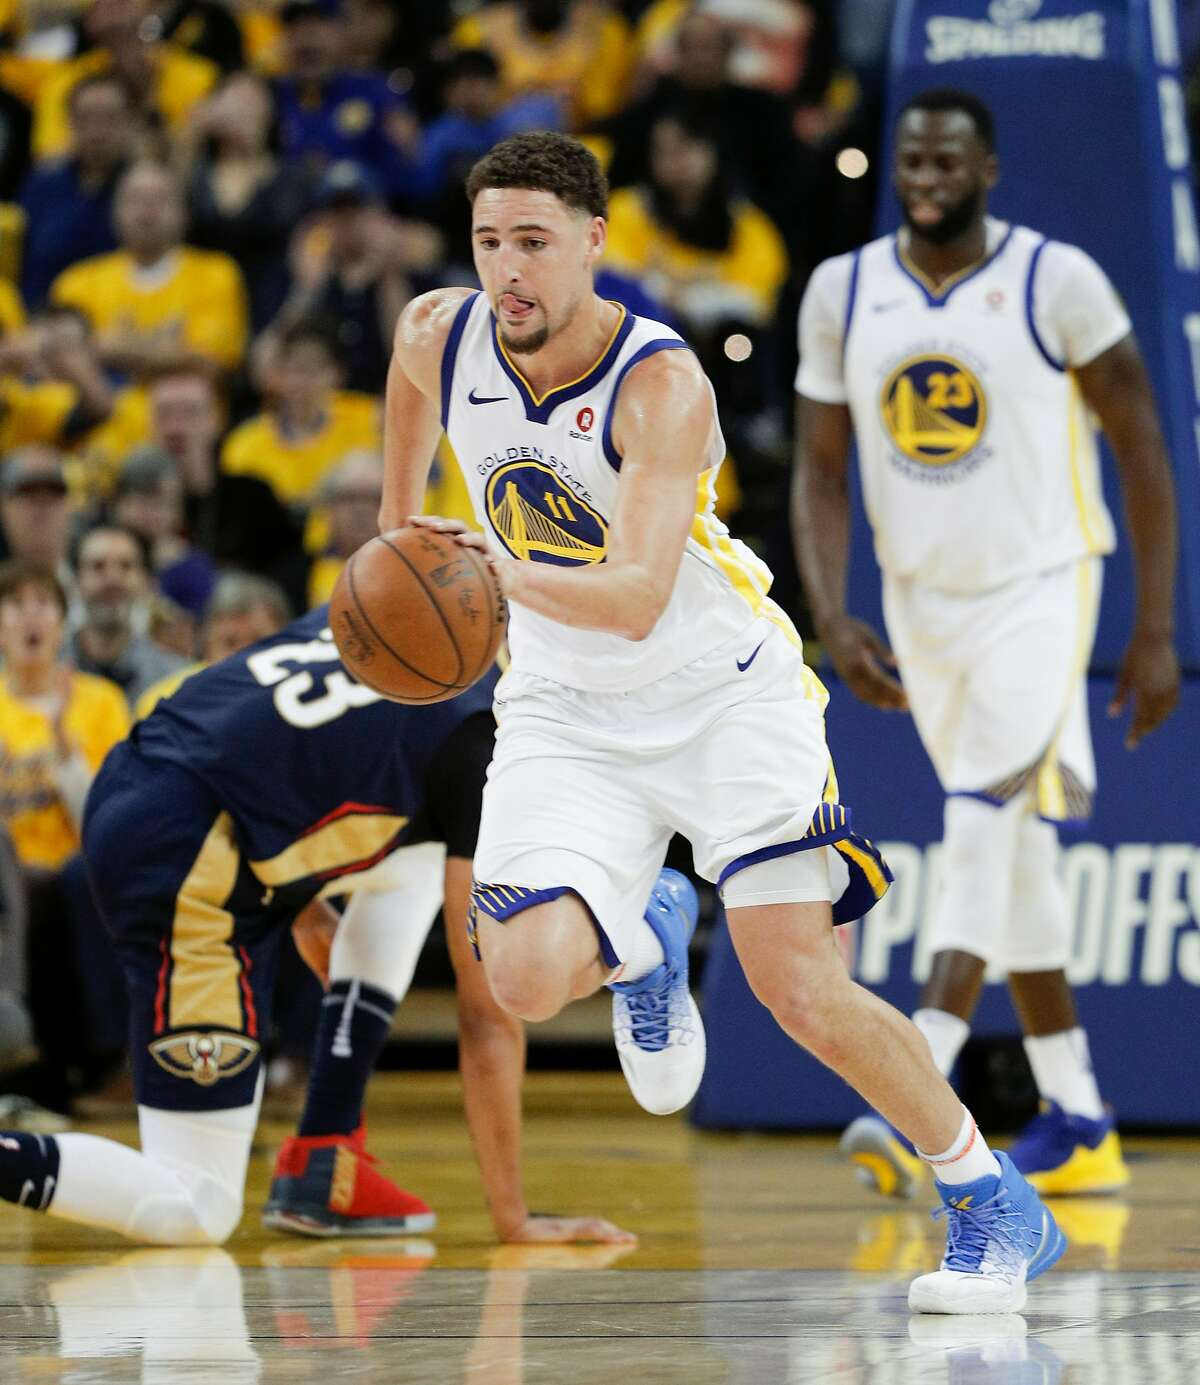 Golden State Warriors' Klay Thompson brings the ball up court in the second quarter during game 1 of round 2 of the Western Conference Finals between the Golden State Warriors and the New Orleans Pelicans at Oracle Arena on Saturday, April 28, 2018 in Oakland, Calif.